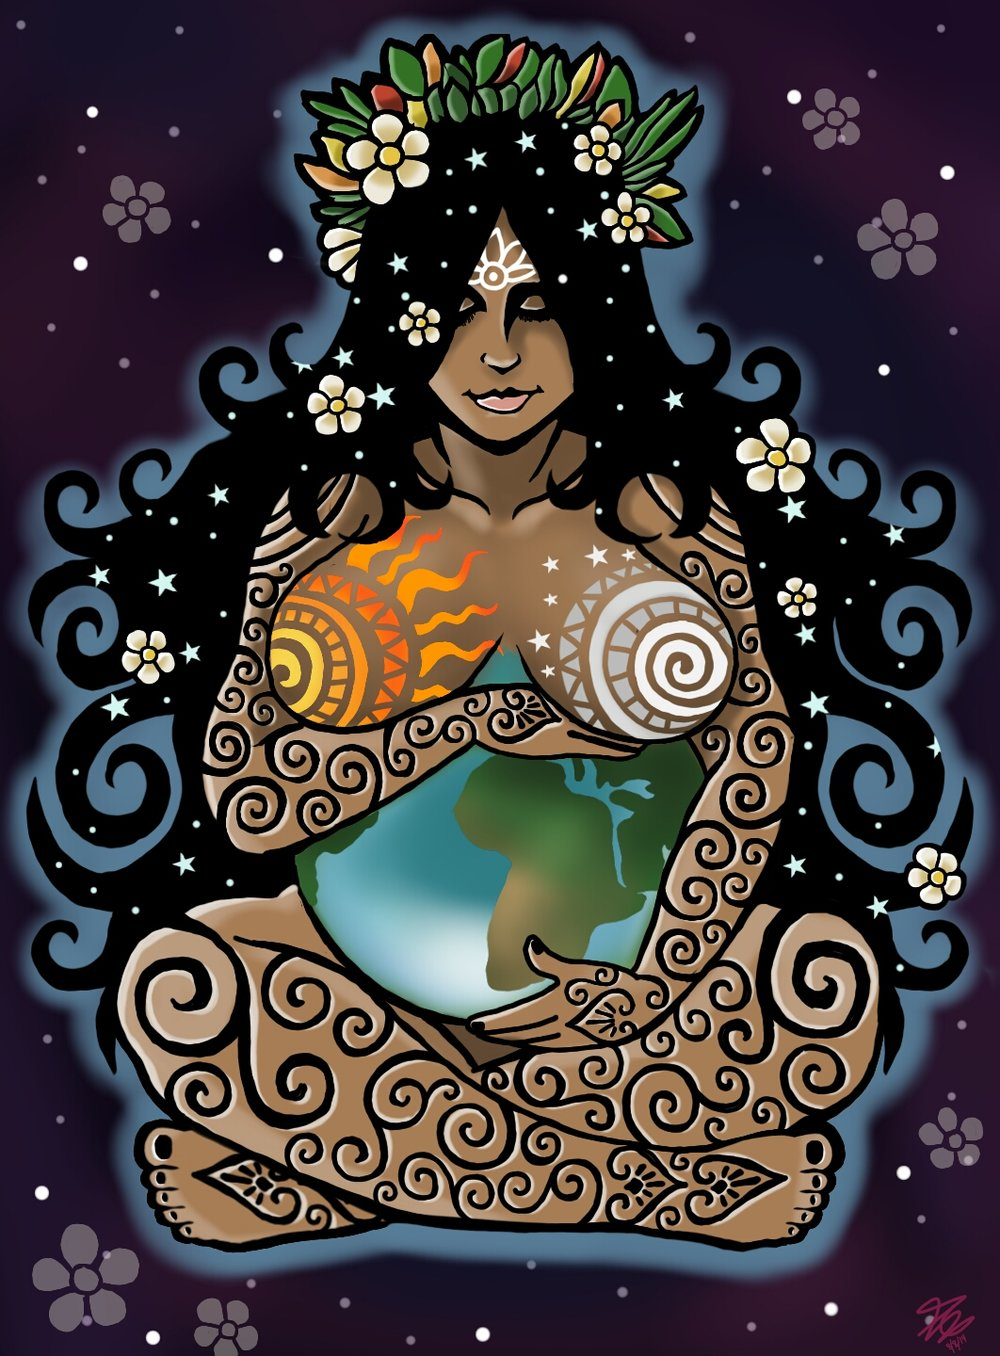 - Is a goddess revered by the indigenous people of the Andes. She is also known as the earth/time mother. In Inca mythology, Pachamama is a fertility goddess who presides over planting and harvesting, embodies the mountains, and causes earthquakes. She is also an ever-present and independent deity who has her own self-sufficient and creative power to sustain life on this earth. Her shrines are hallowed rocks, or the boles of legendary trees, and her artists envision her as an adult female bearing harvests of potatoes and coca leaves. The four cosmological Quechua principles - Water, Earth, Sun, and Moon - claim Pachamama as their prime origin, and priests sacrifice llamas, cuy (guinea pigs), and elaborate, miniature, burned garments to her. After the conquest by Spain, which forced conversion to Roman Catholicism, the figure of the Virgin Mary became united with that of the Pachamama for many of the indigenous people. In pre-Hispanic culture, Pachamama is often a cruel goddess eager to collect her sacrifices. As Andes cultures form modern nations, Pachamama remains benevolent, giving, and a local name for Mother Nature. Thus, many in South America believe that problems arise when people take too much from nature because they are taking too much from Pachamama.